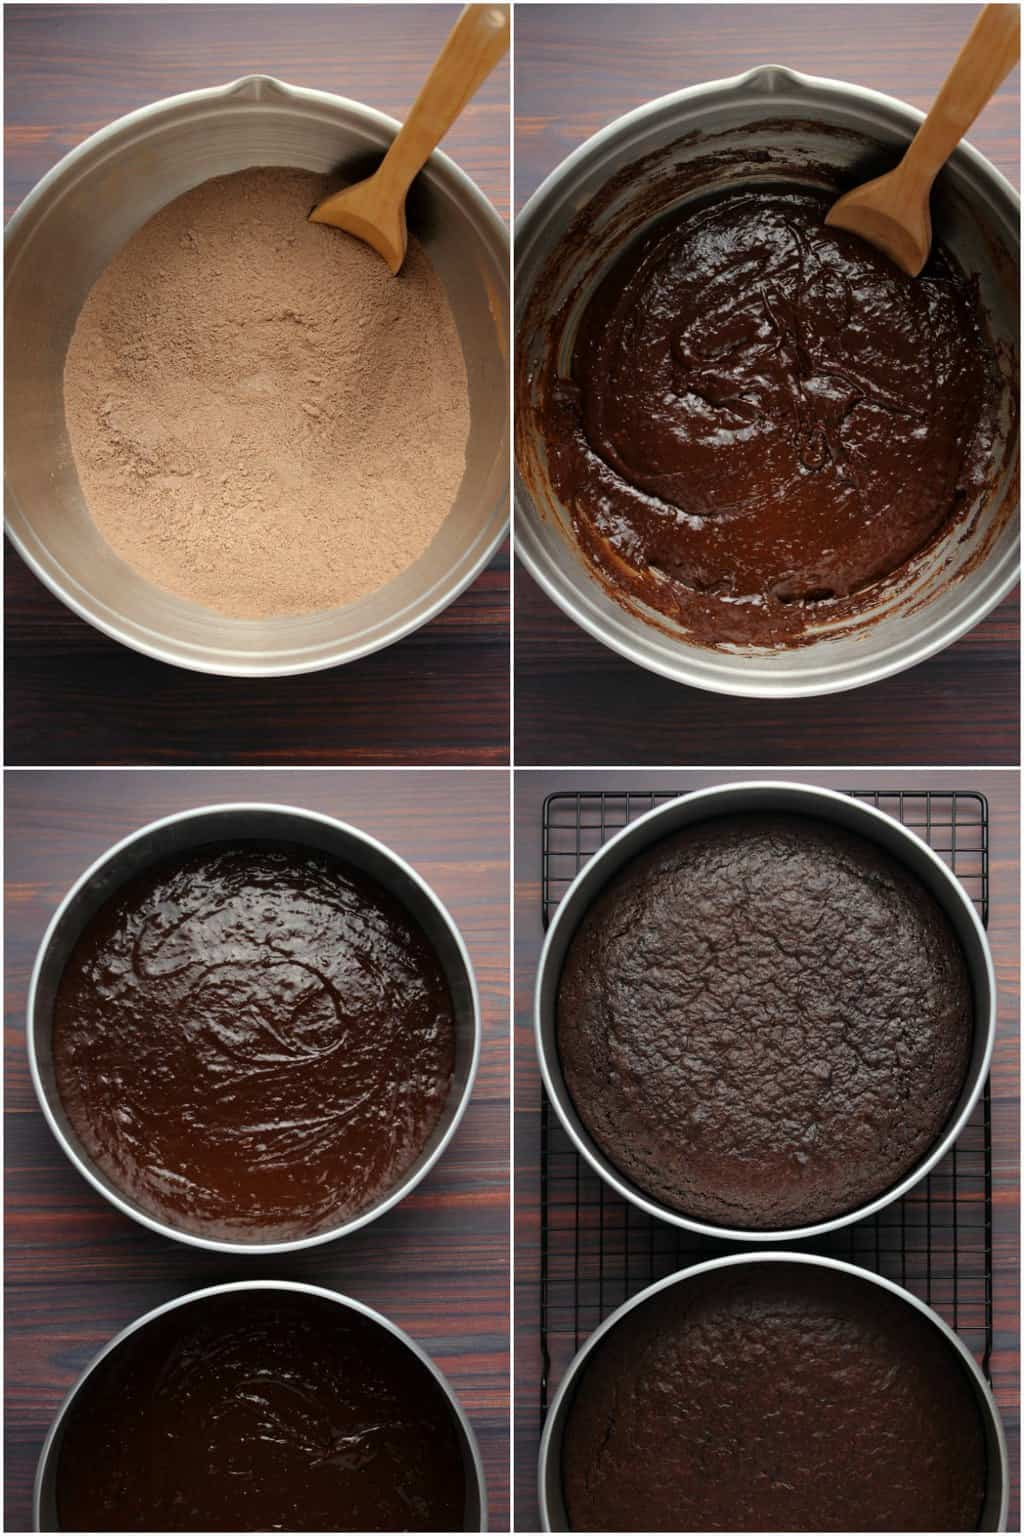 Step by step process photo collage of making vegan chocolate fudge cake.